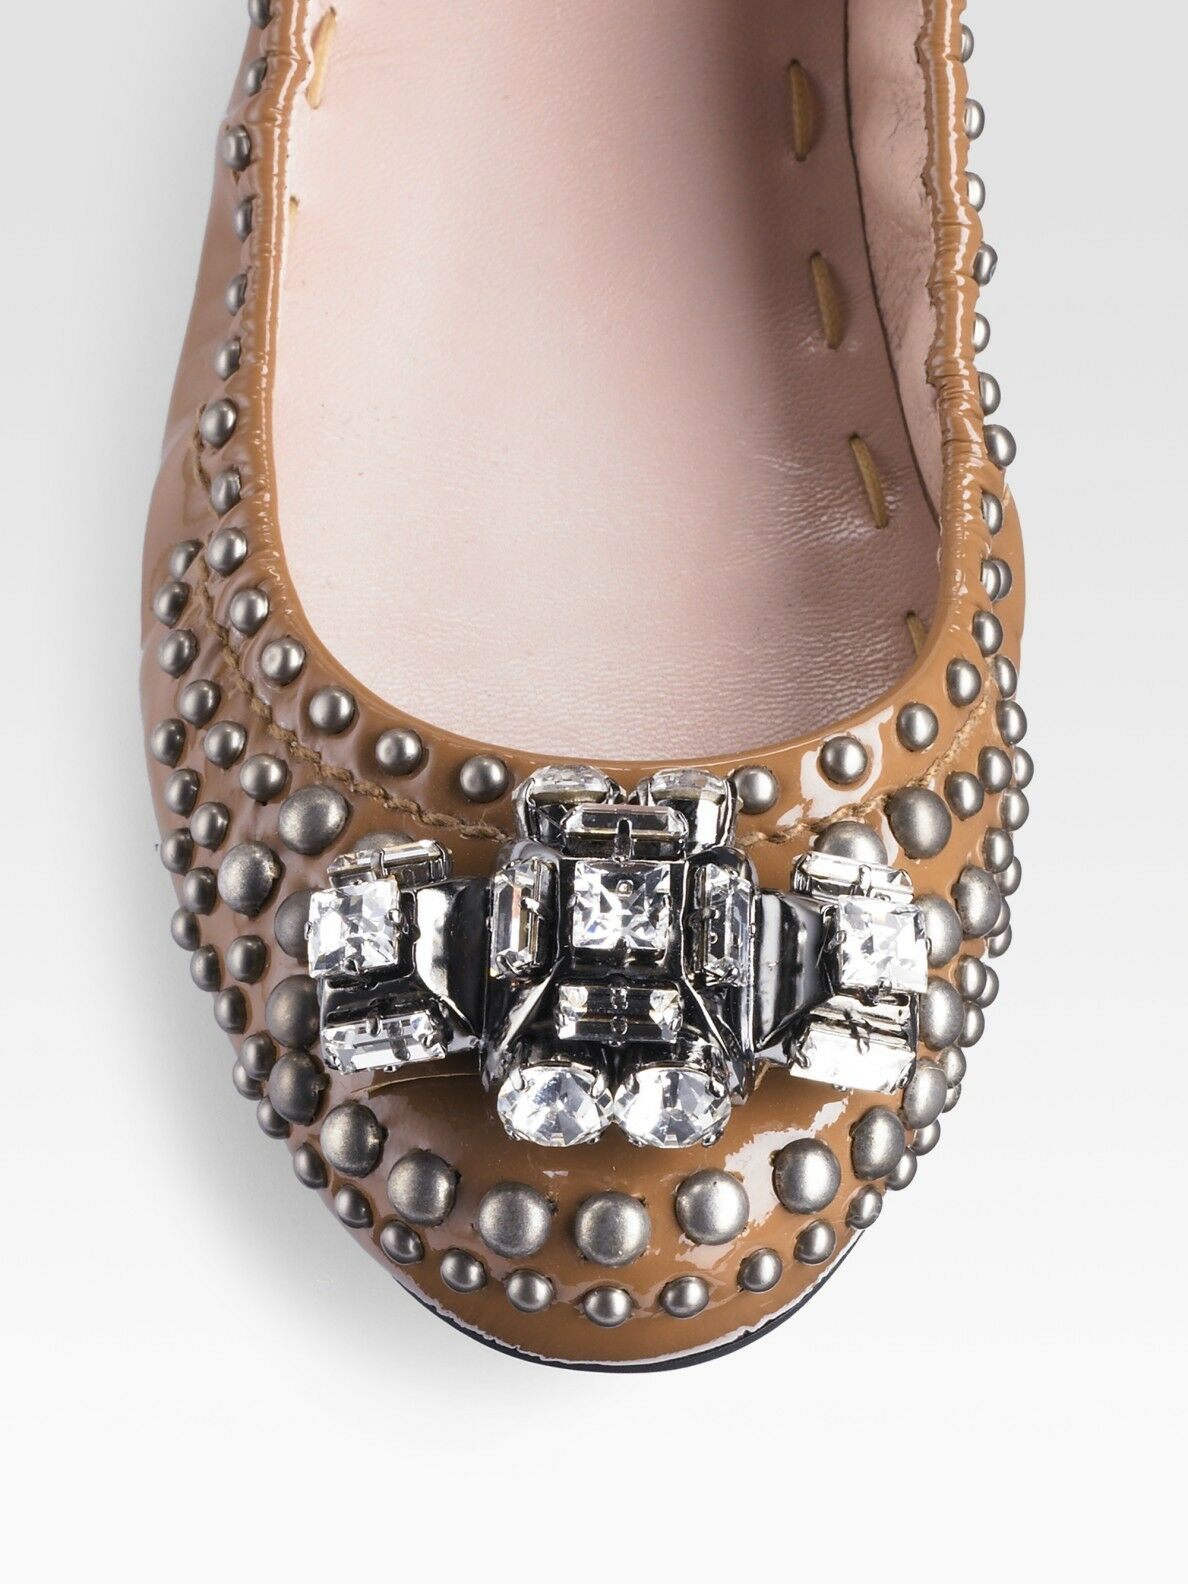 Miu Miu Leather and Strass Ballerinas Size 37 New